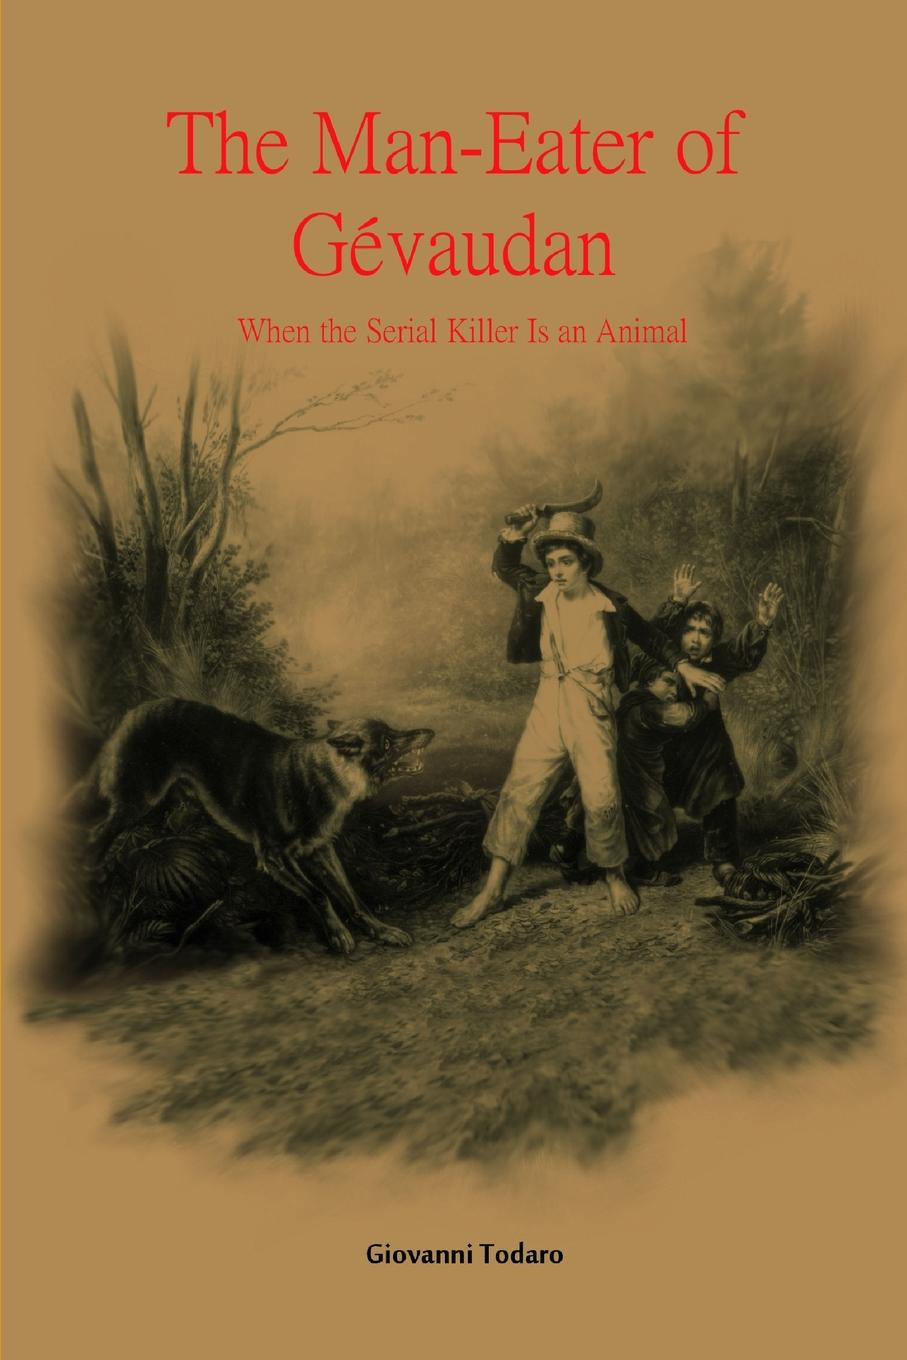 Giovanni Todaro The Man-Eater of Gevaudan цена 2017